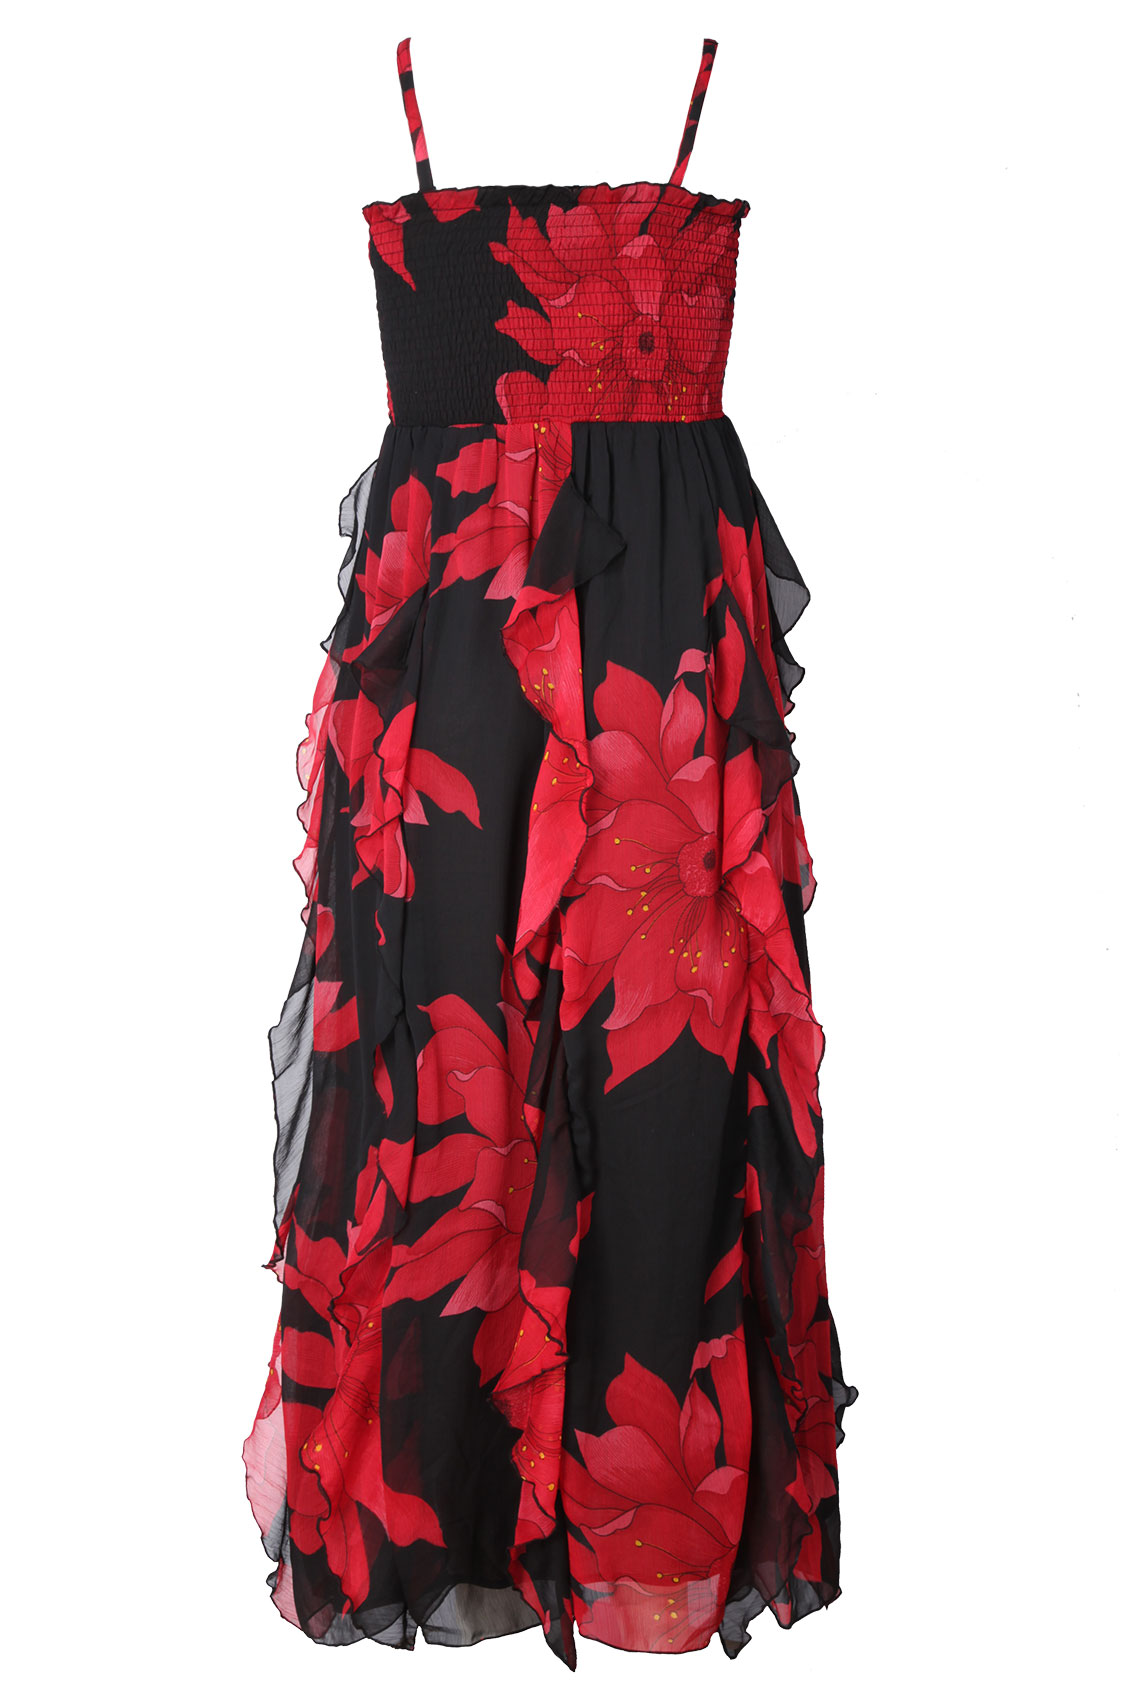 Plus Size Black And Red Maxi Dress Formal Dresses